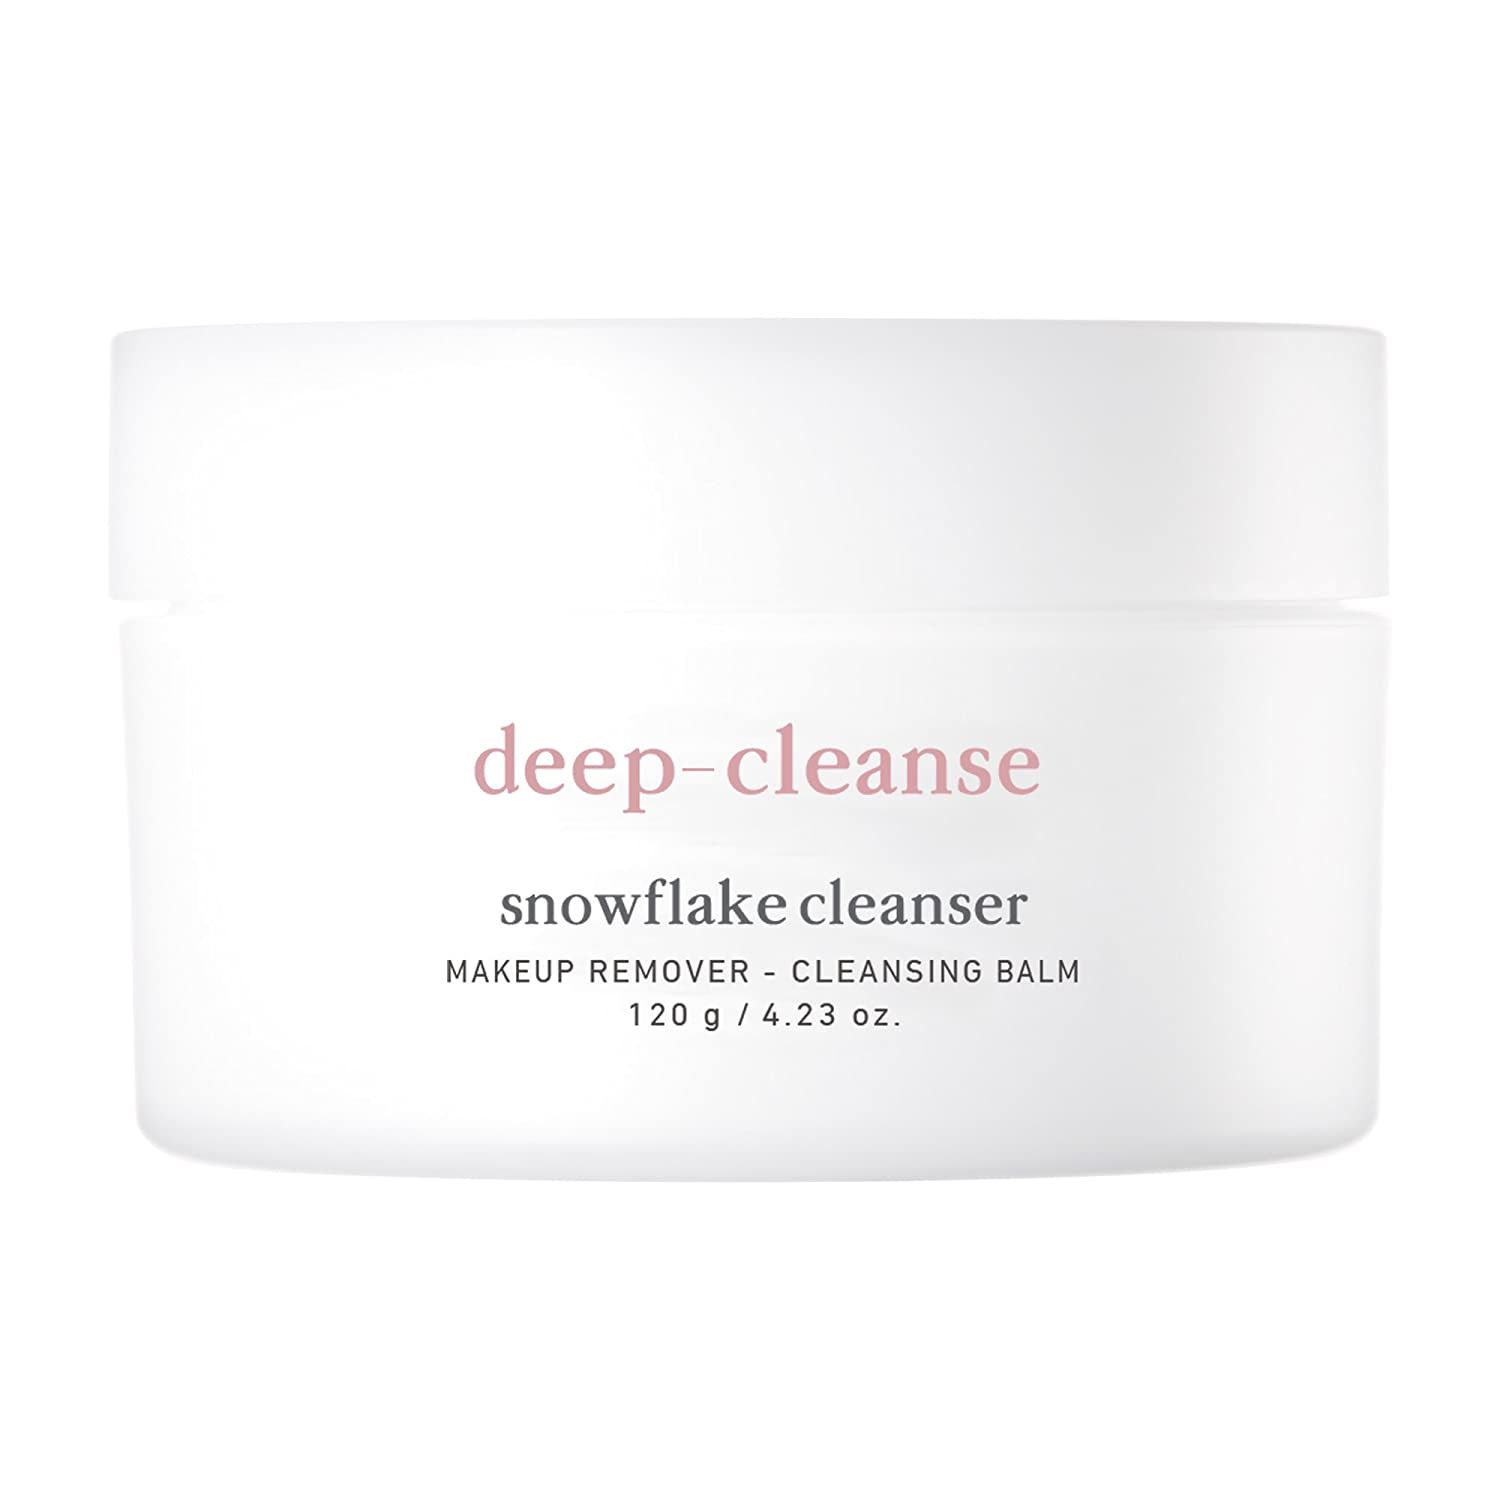 NOONI Deep-Cleanse Snowflake Balm Cleanser, Face Cleanser, Korean Skin Care, Makeup Remover, Cleansing Balm, Facial Wash, Korean Beauty, Moisturizer for face, 4.23 Ounces